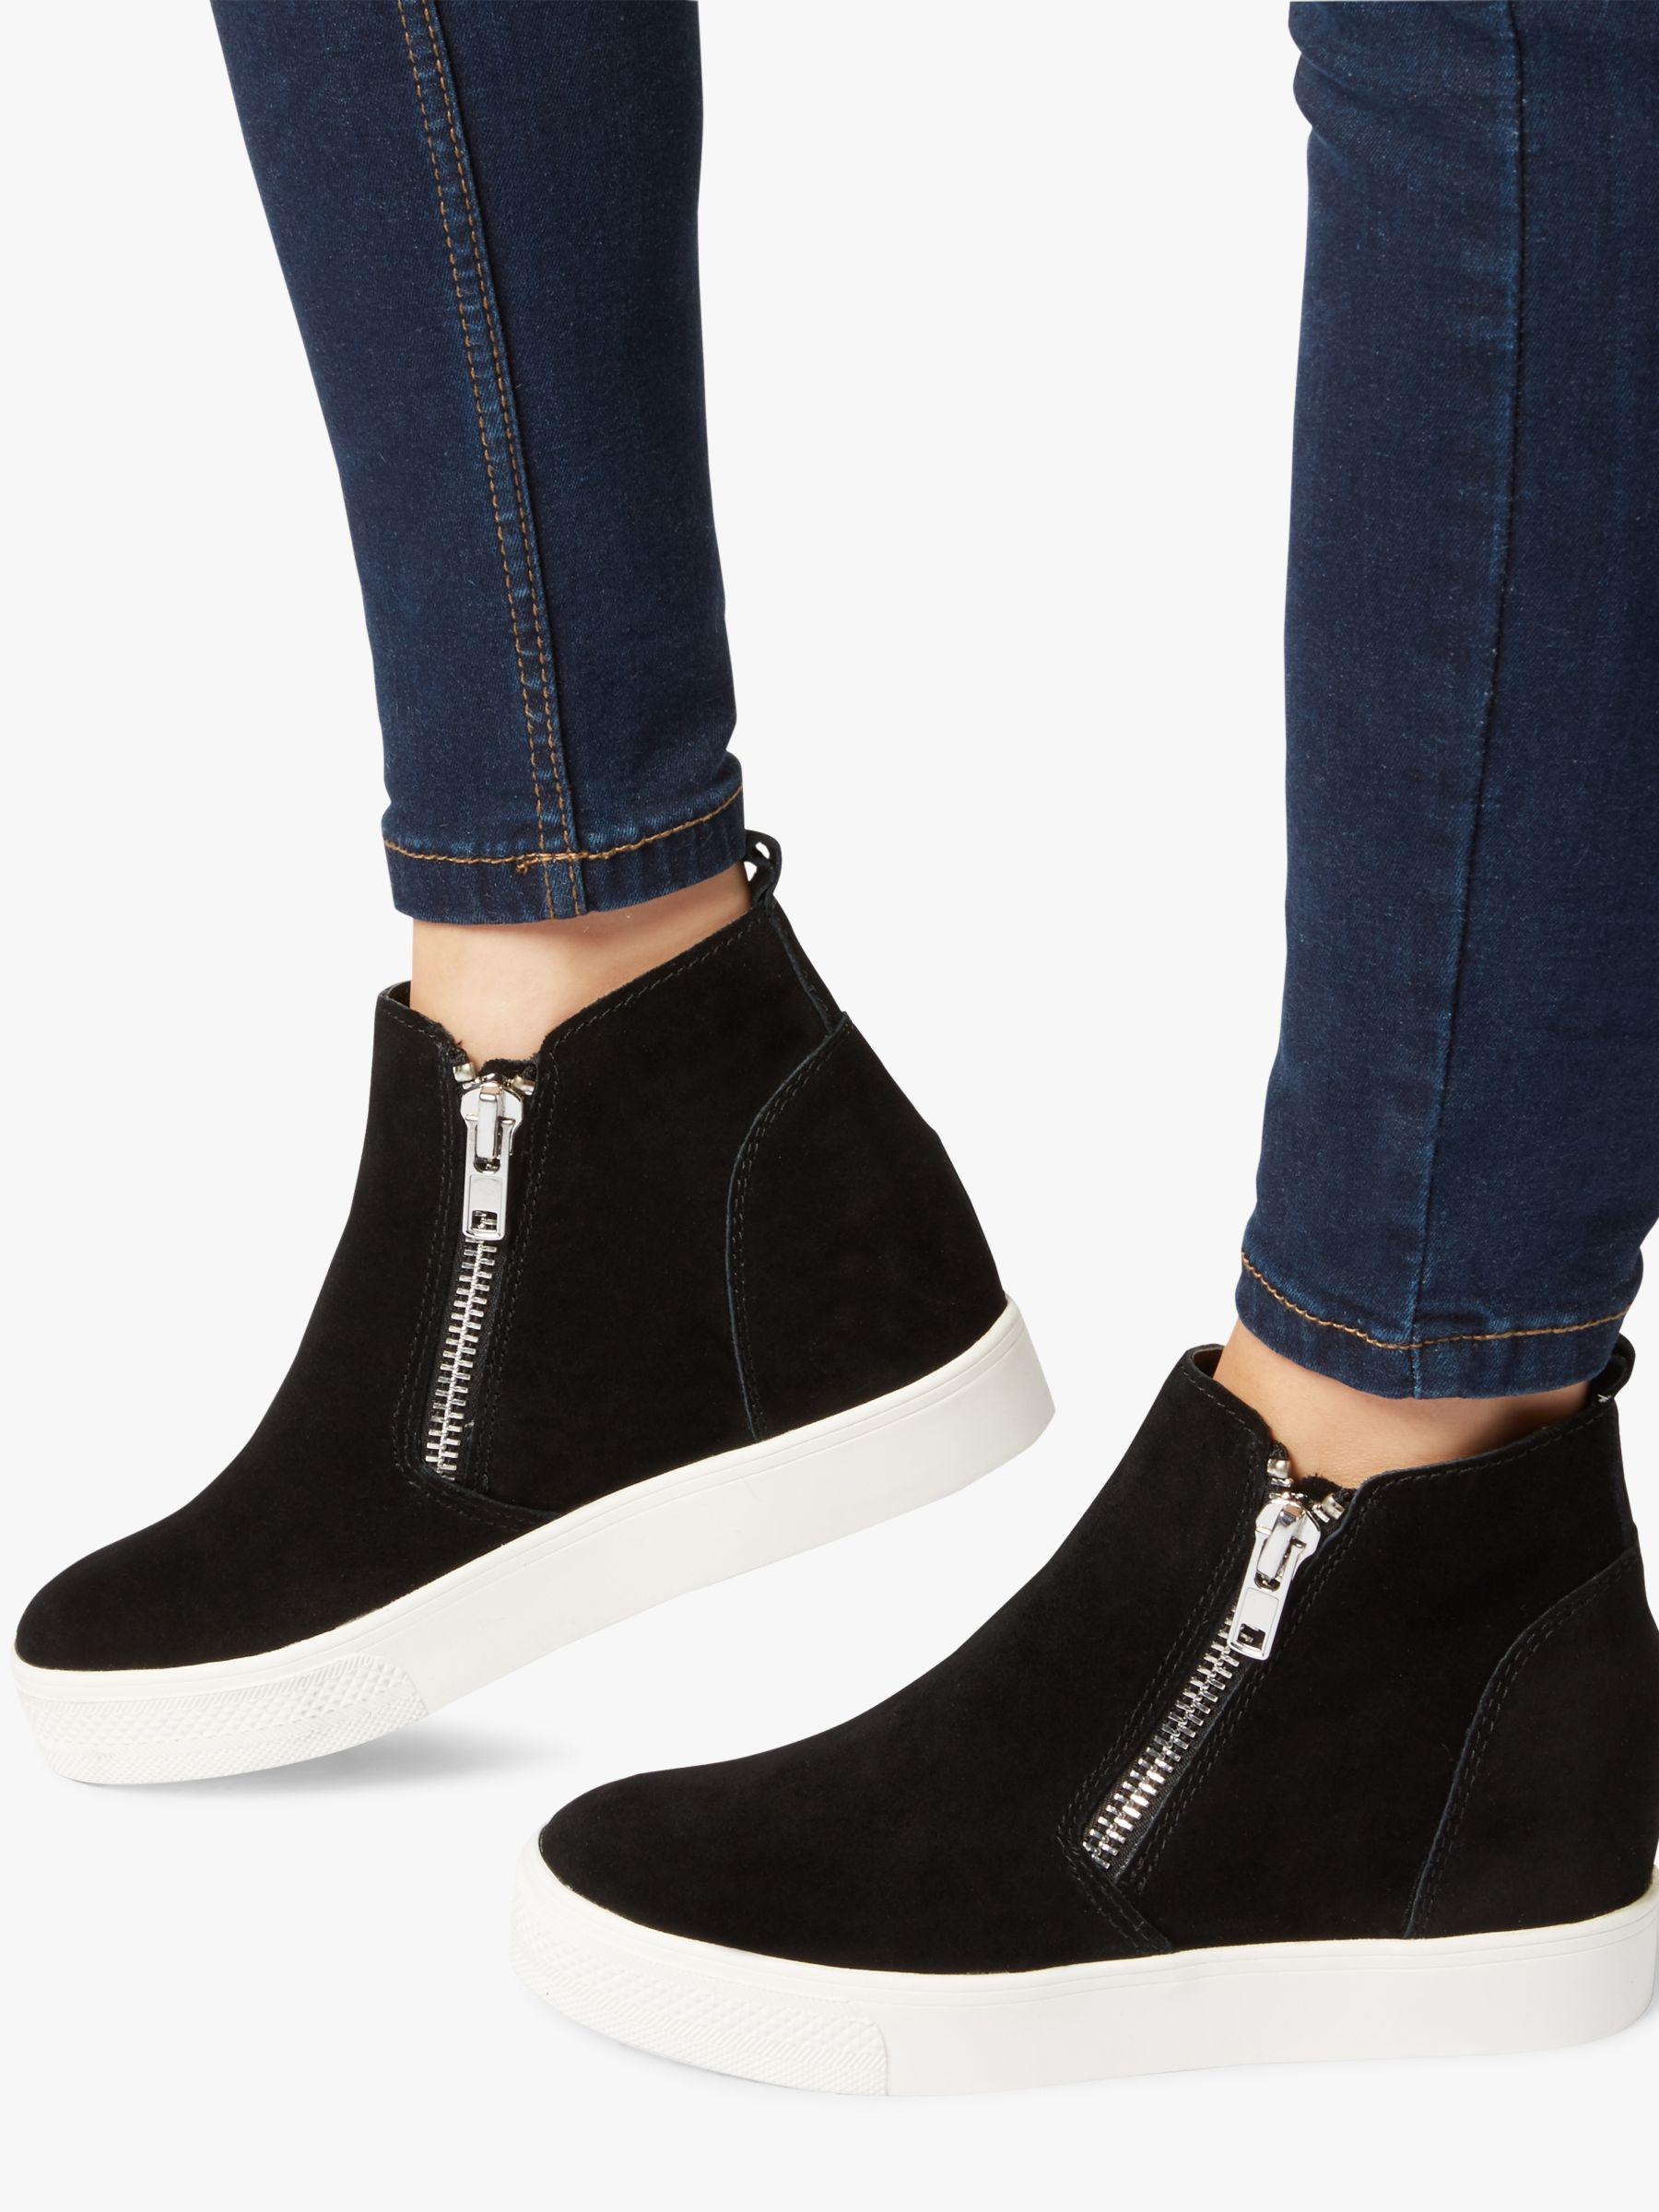 061e3d46dee Steve Madden Women s Wedgie Wedge Sneakers in Black - Lyst